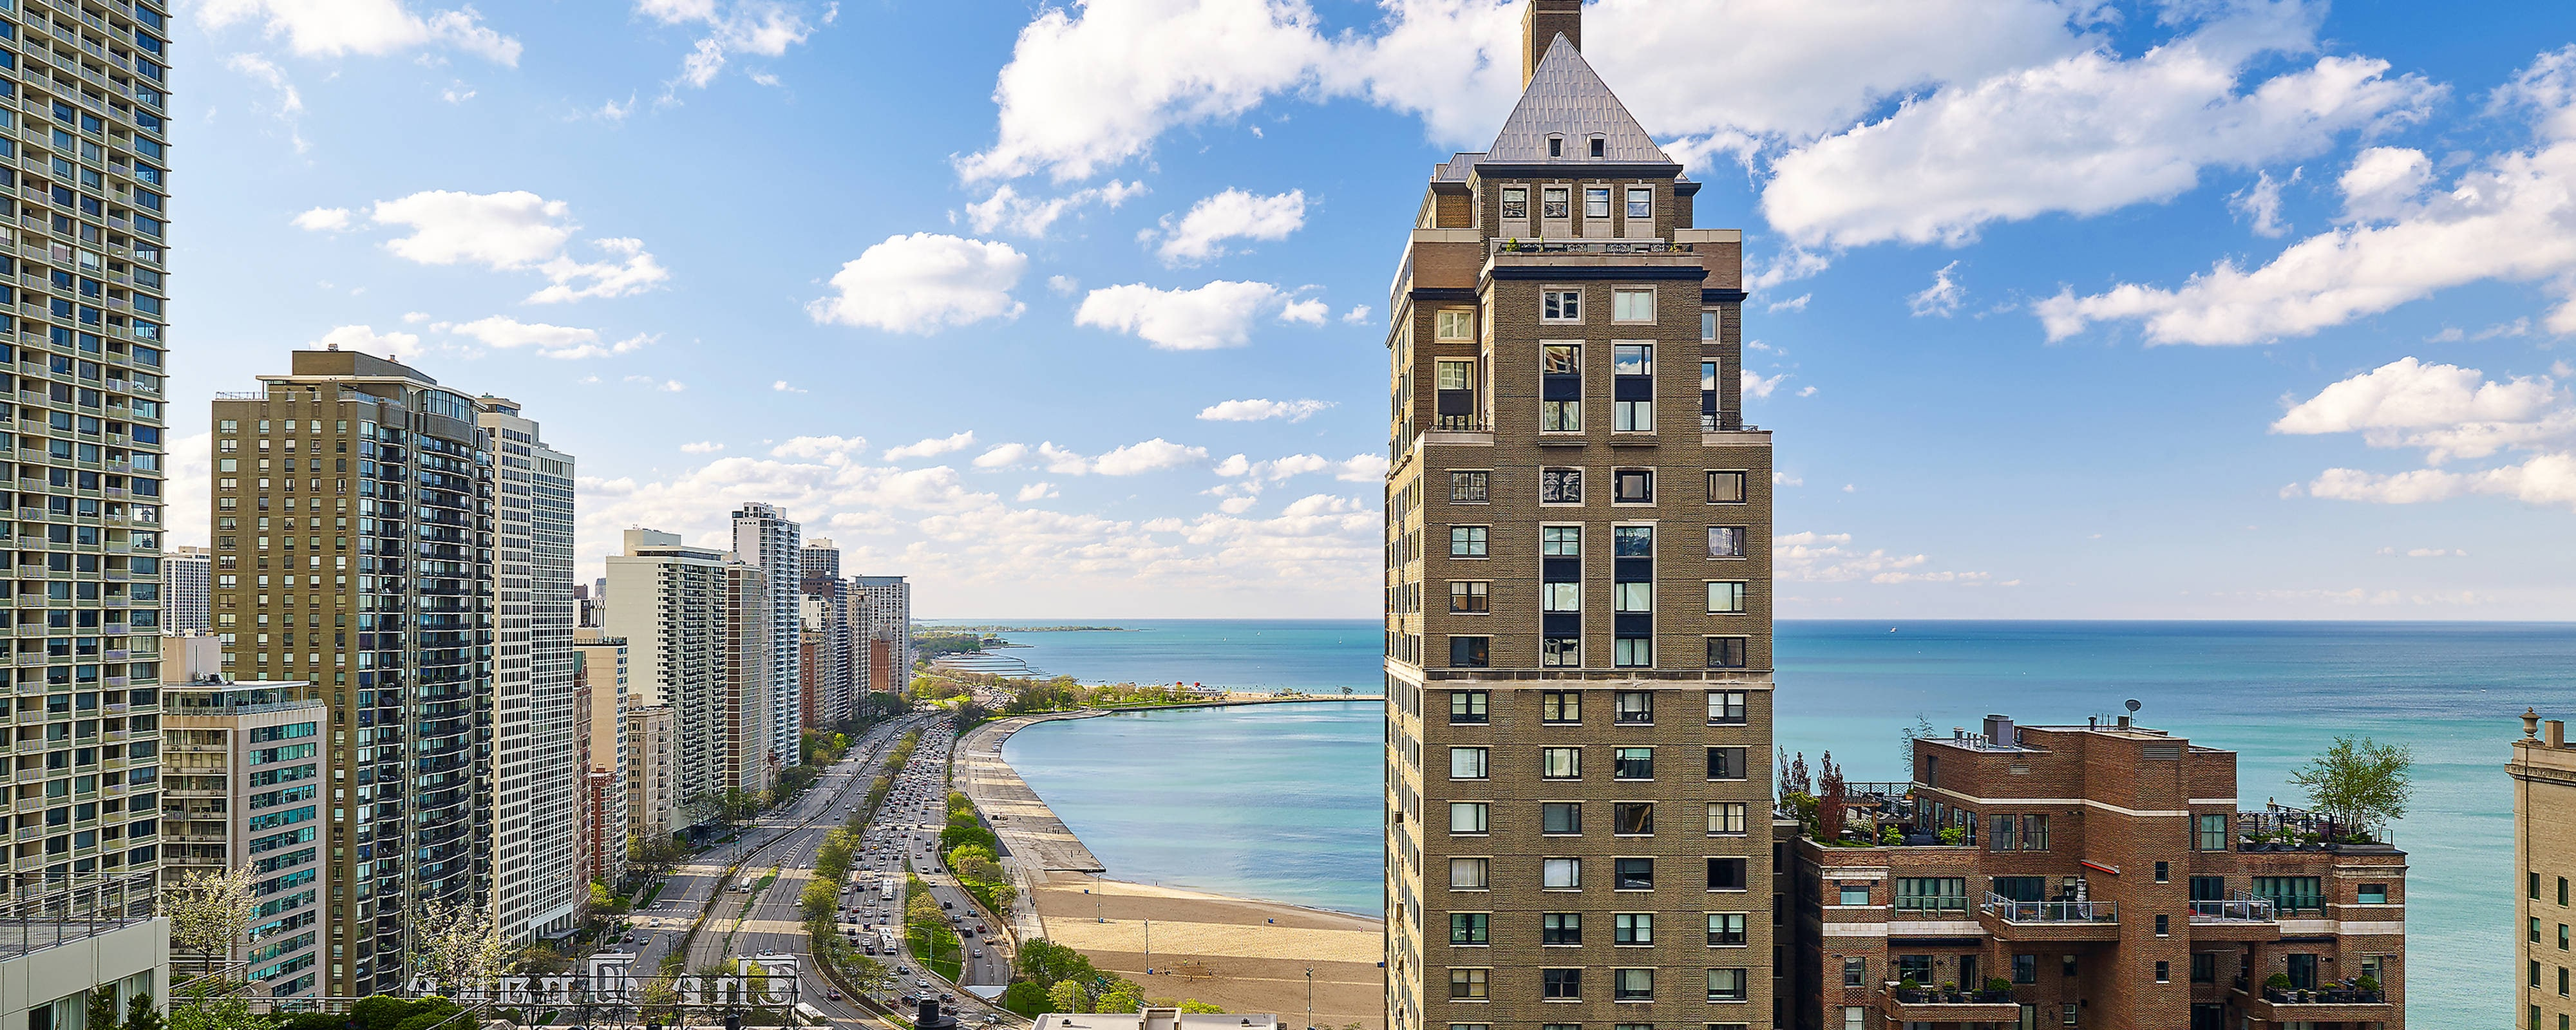 Coiffeuse Pas Cher But Downtown Chicago Hotel Magnificent Mile The Westin Michigan